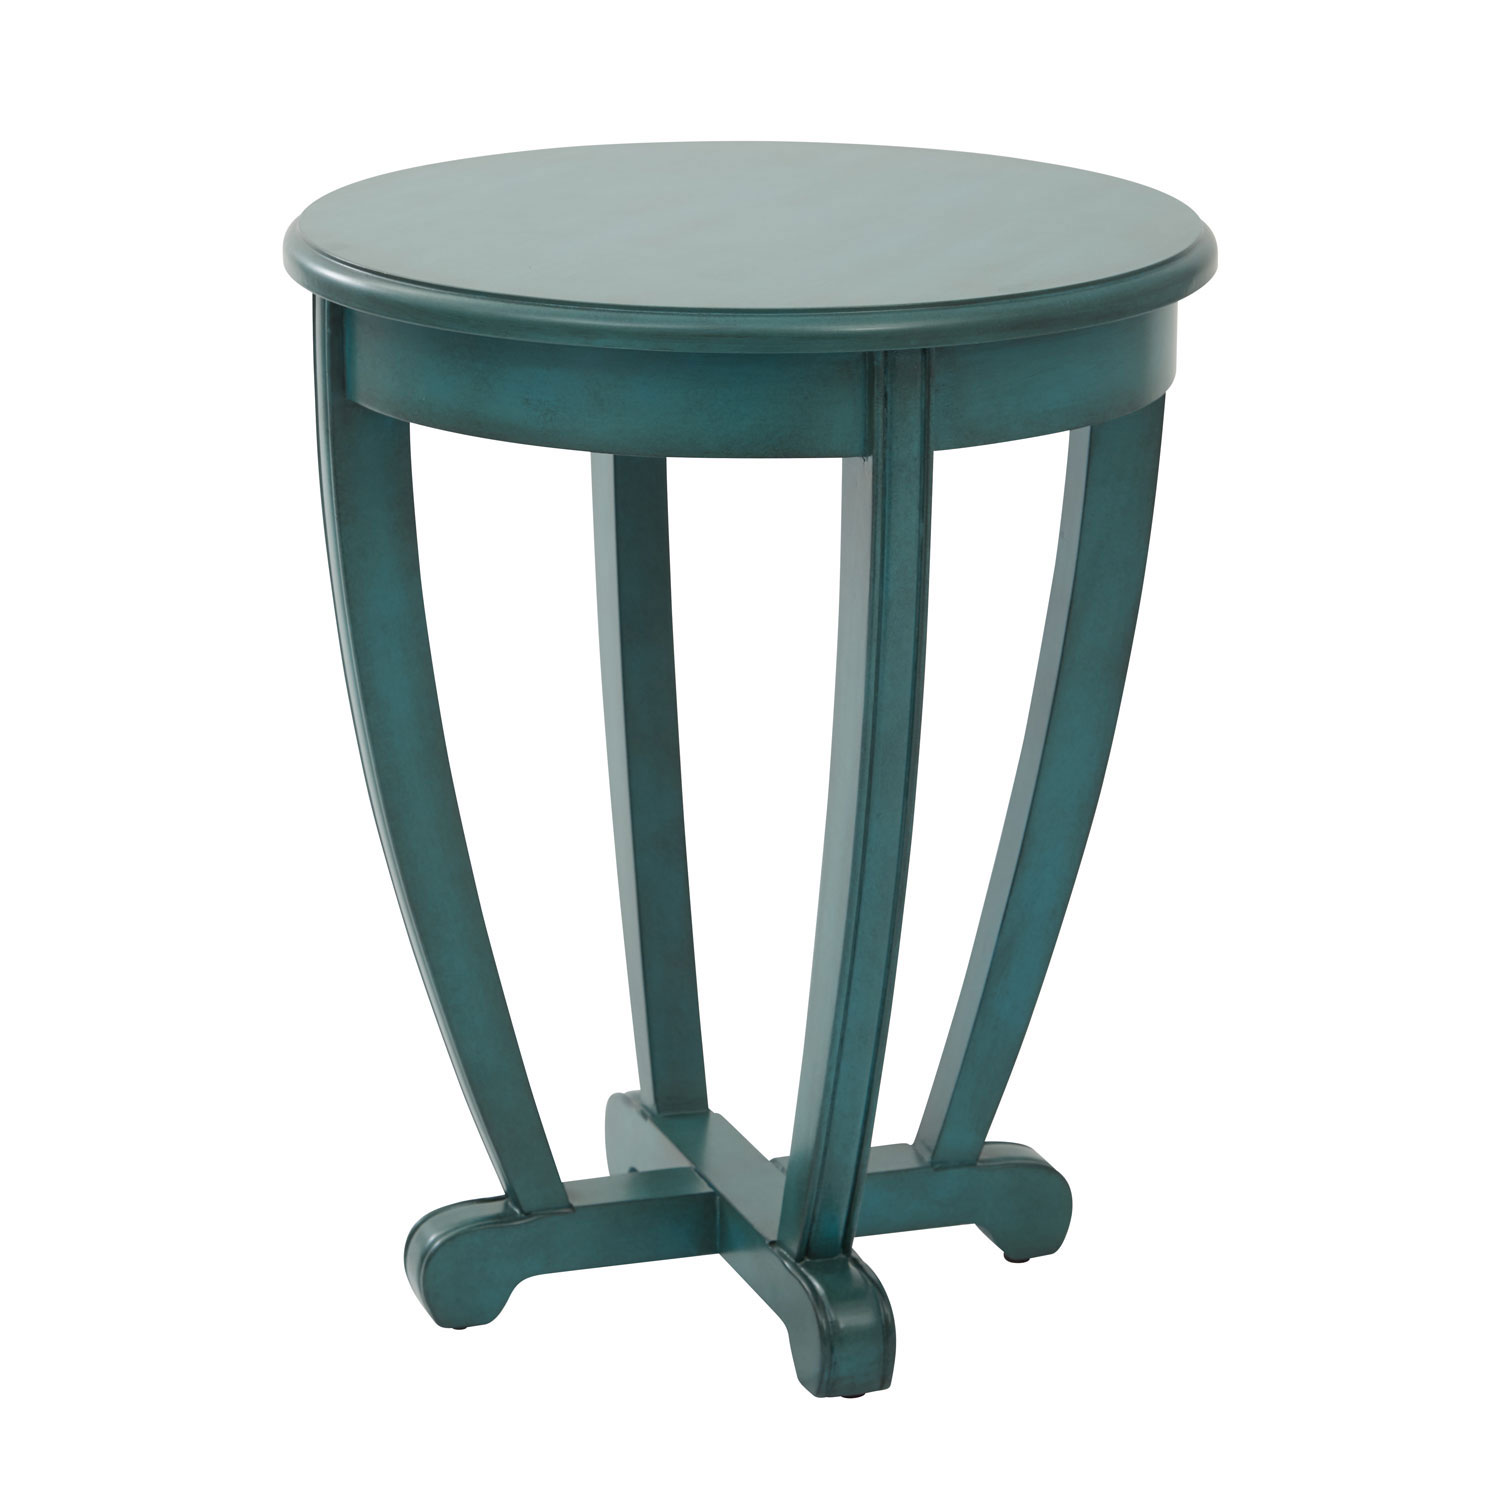 first grace blue accent table bellacor teal clear plastic pendant lighting target lounge chairs mirrored tray console with drawers bronze glass coffee square lucite modern nesting